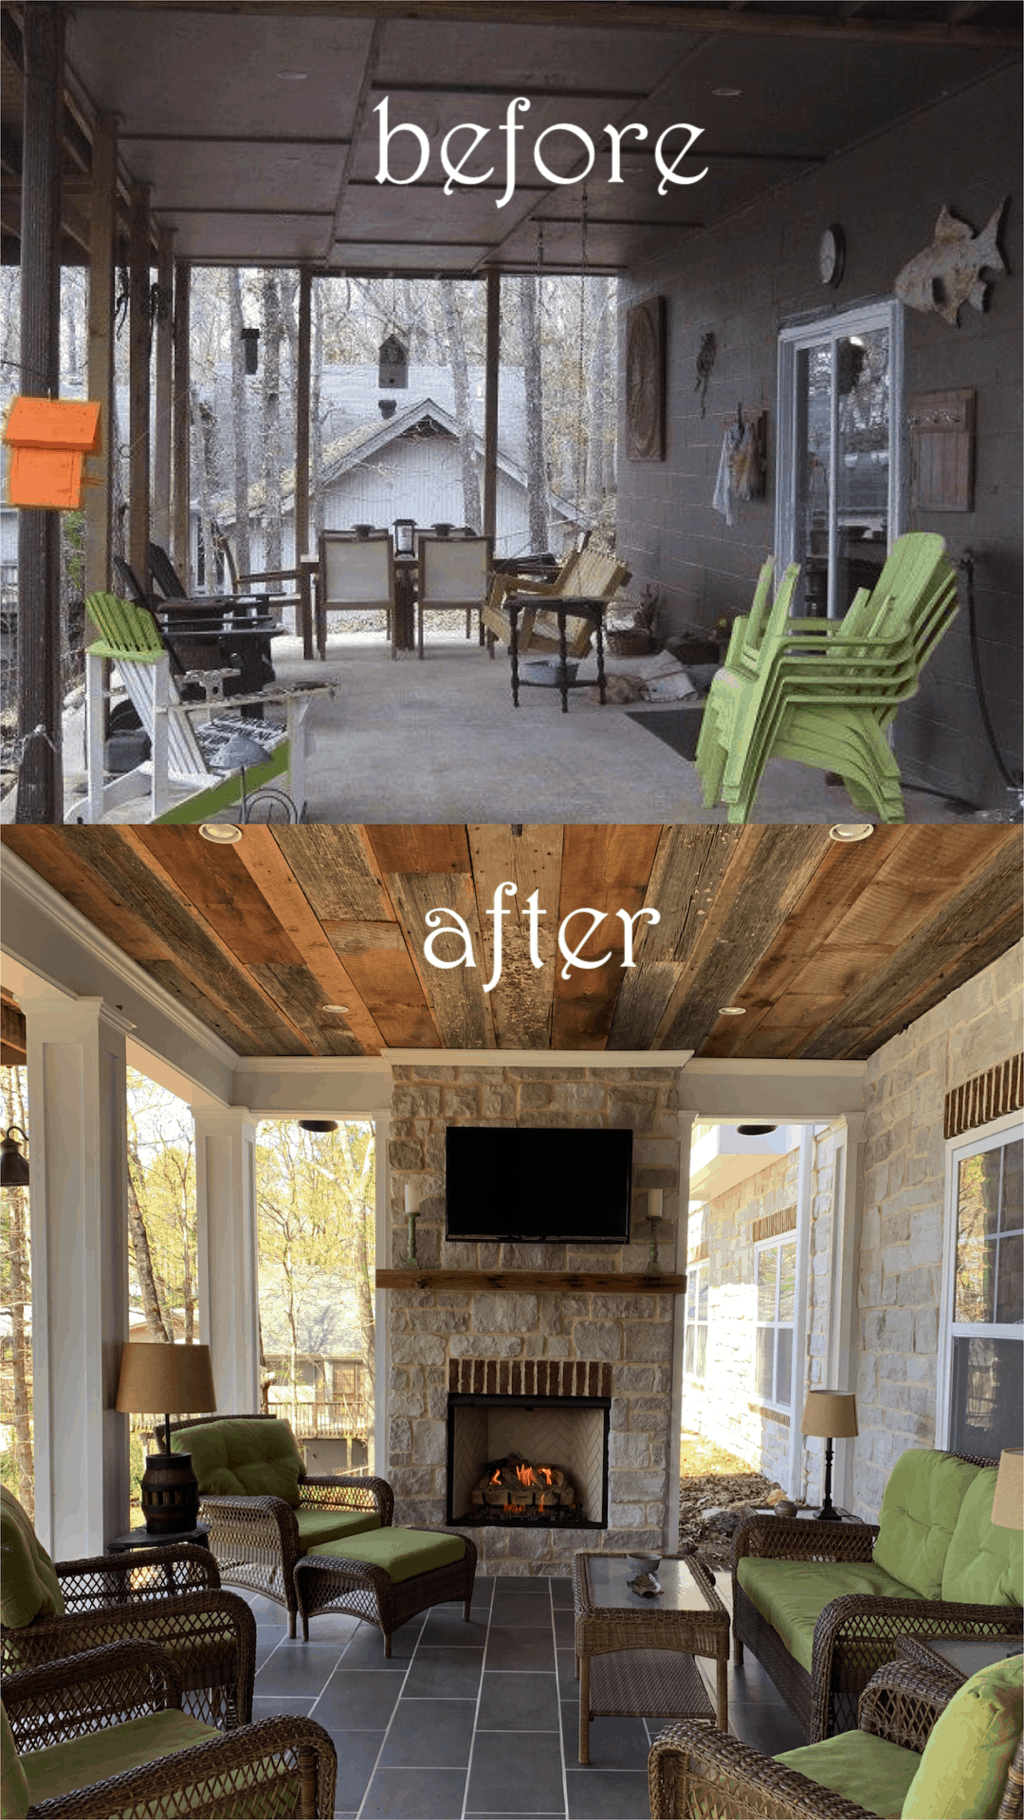 How We Transformed Our Porch (Total Porch Renovation)